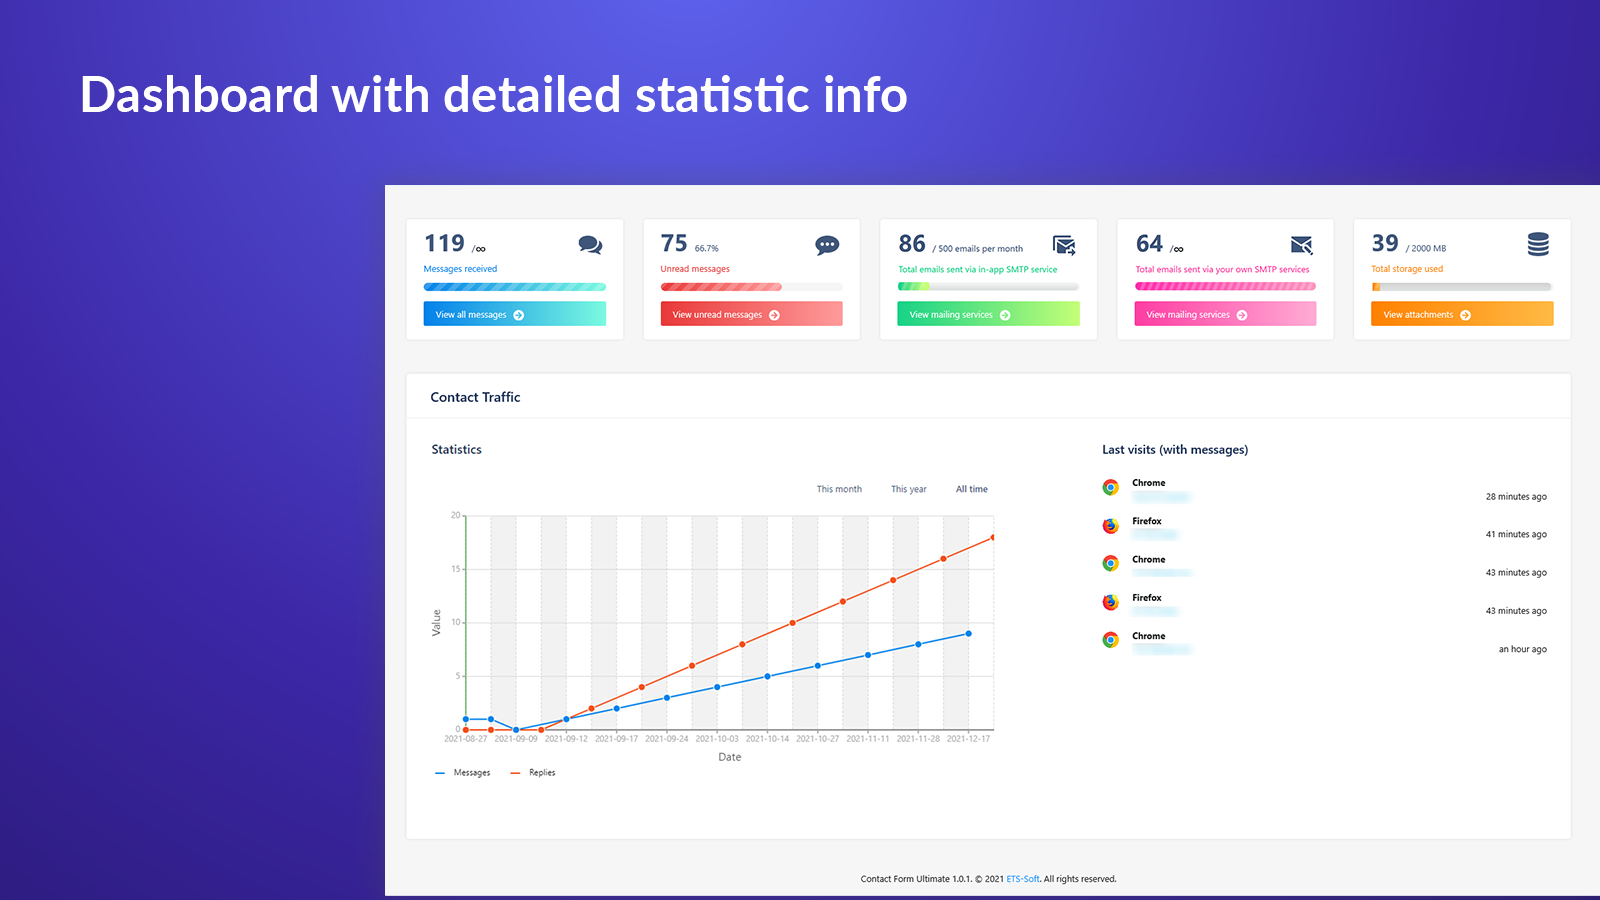 Dashboard with detailed statistic info from contact form